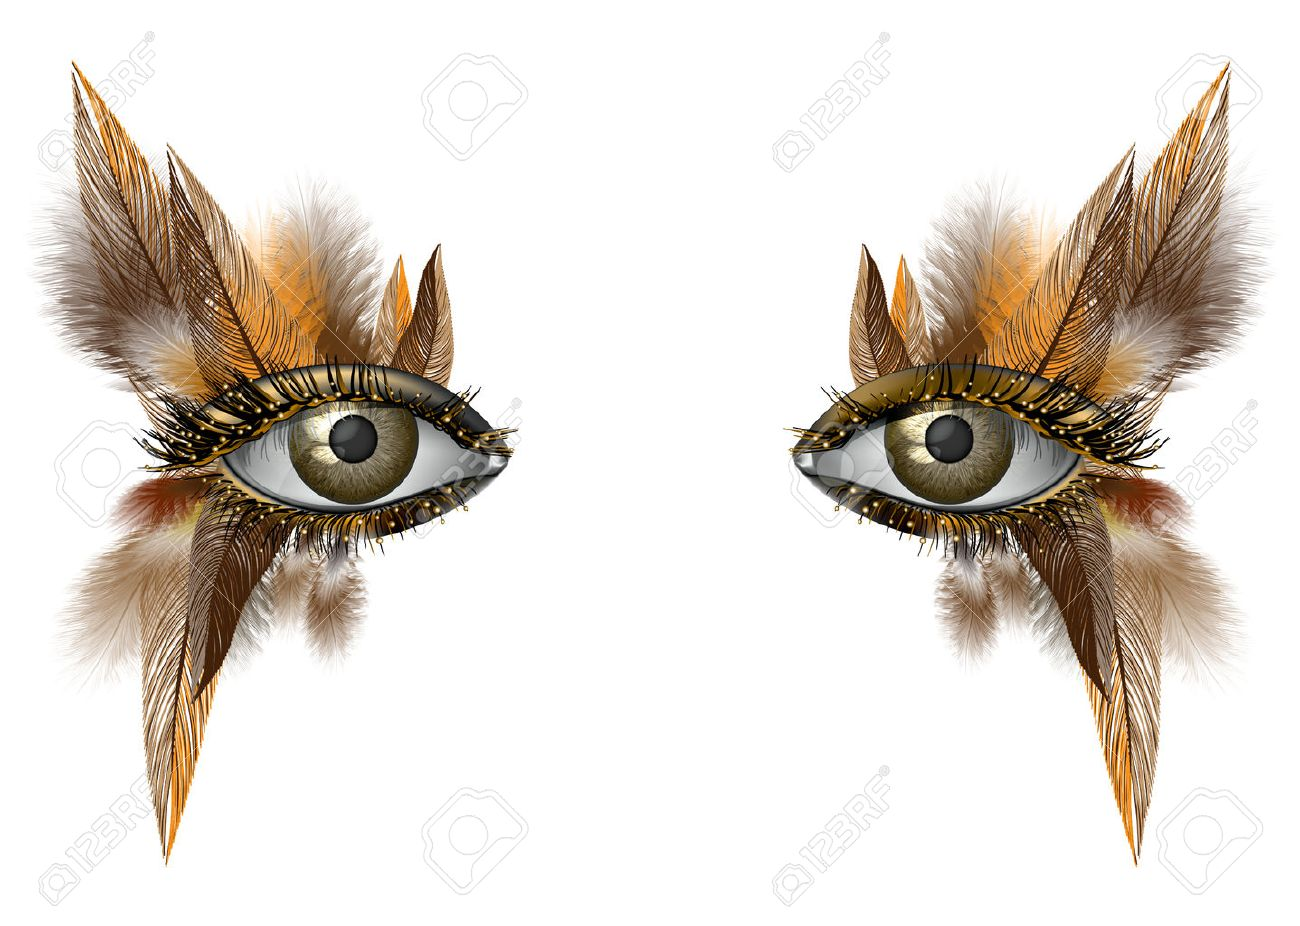 Realistic female eye close up artistic makeup – wild bird feather - 50698654